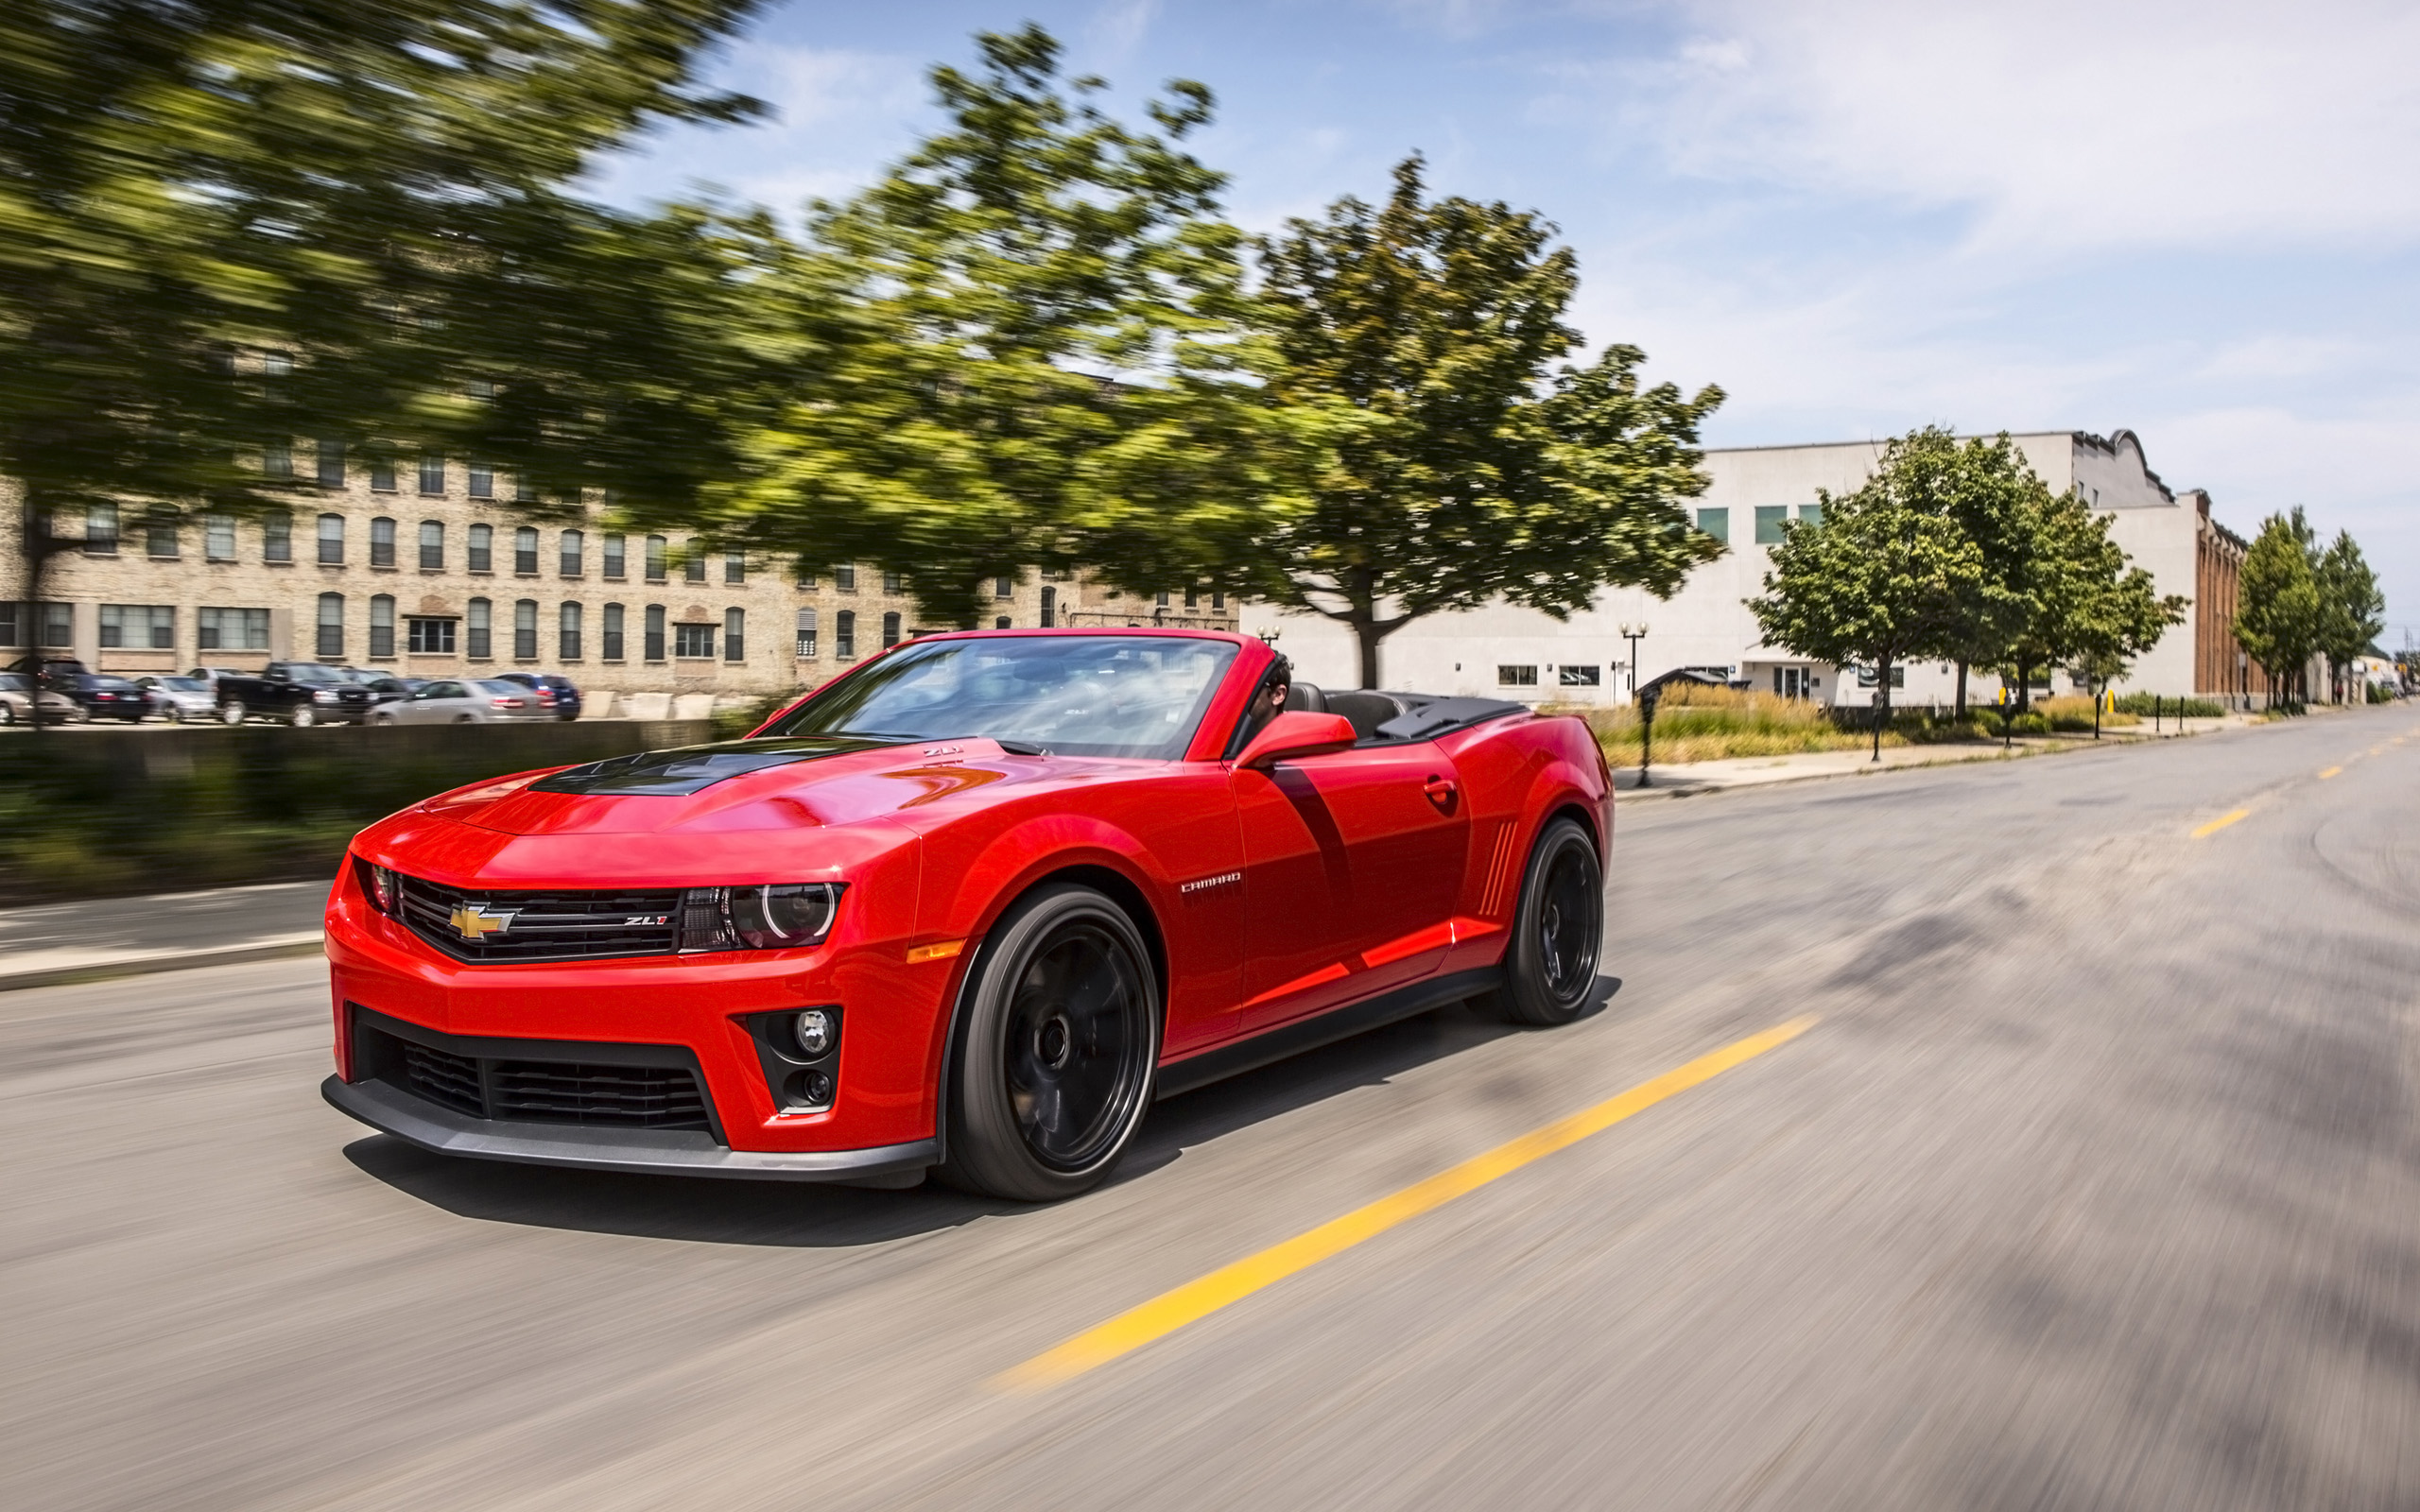 2014 Chevrolet Camaro Convertible photo - 3